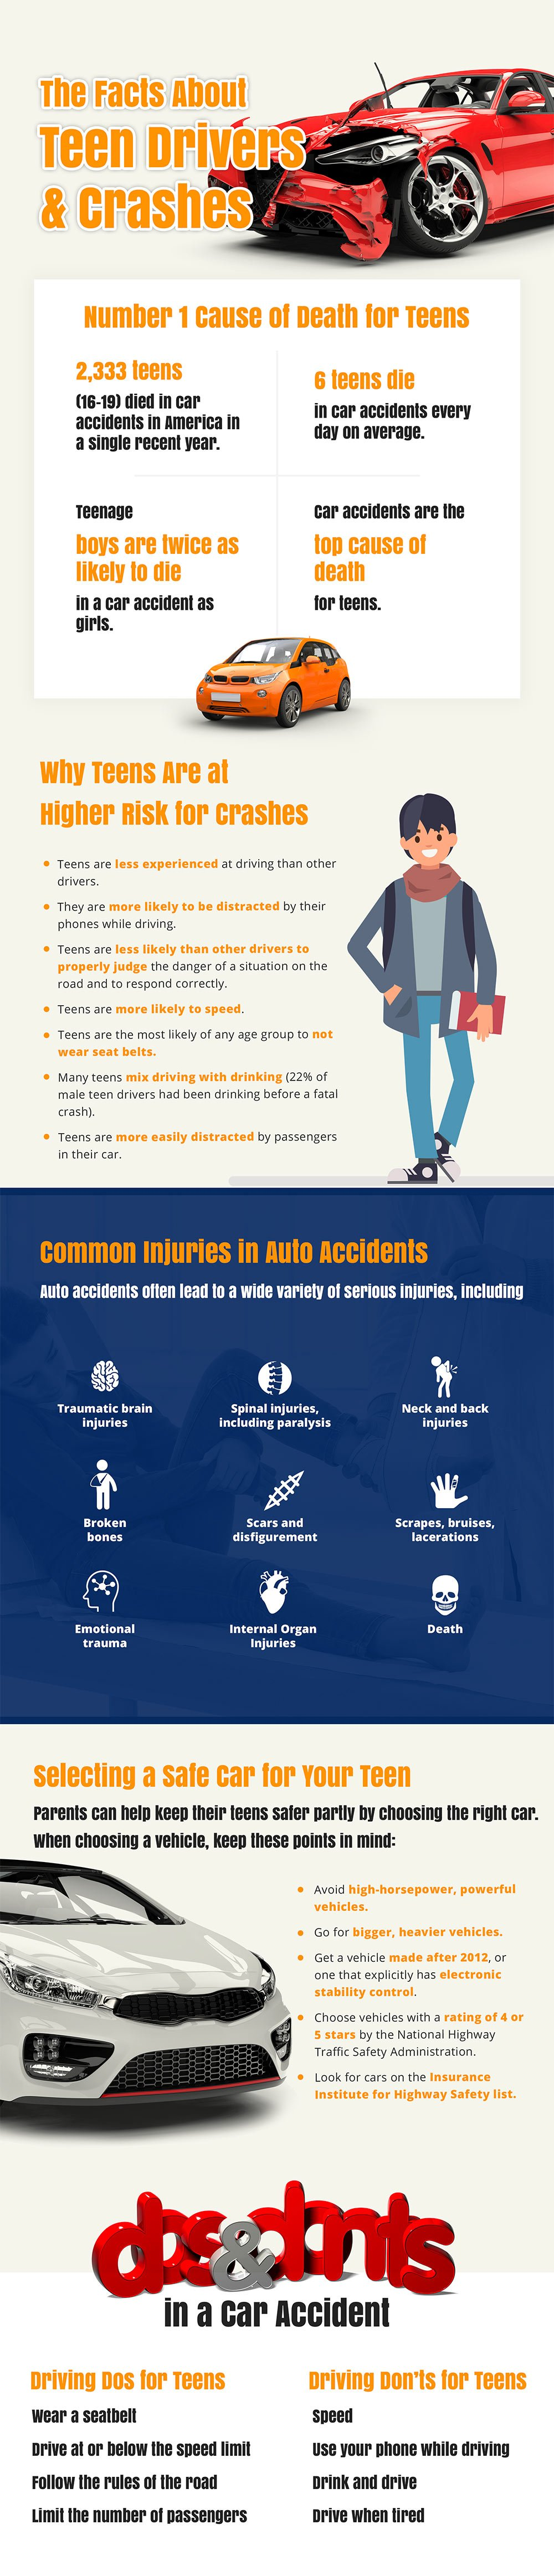 Facts about Teen Drivers & Crashes